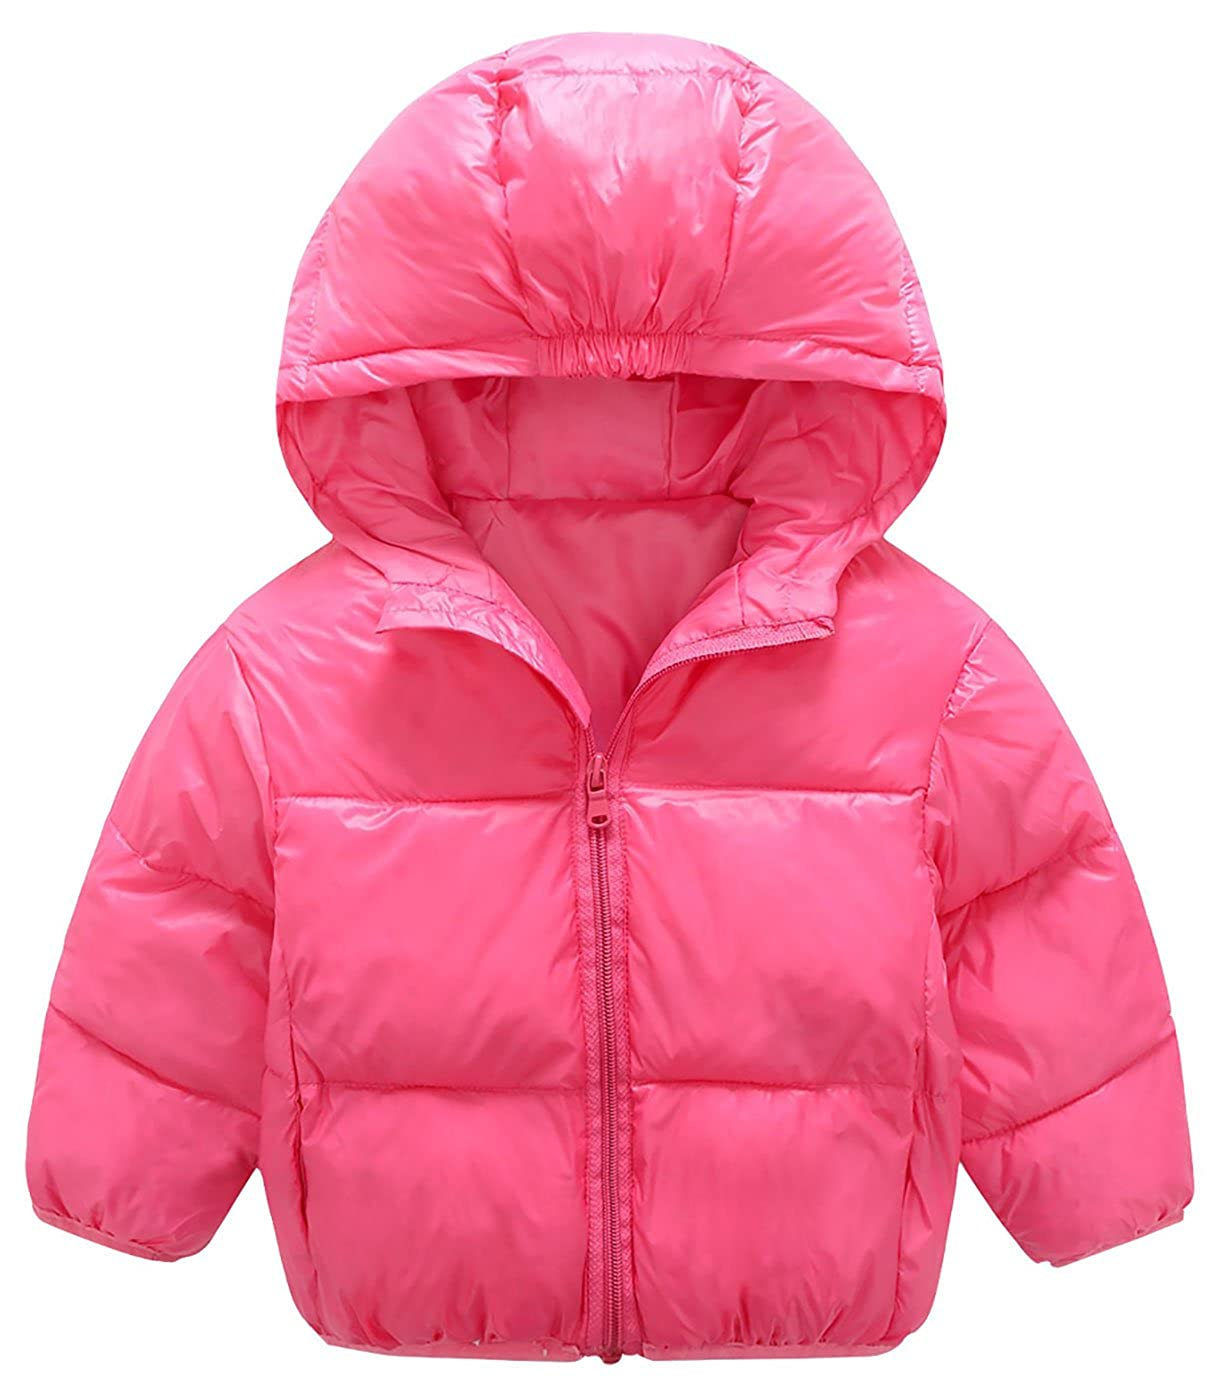 Mengxiaoya Little Boys Girls Winter Puffer Coats Windproof Warm Down Jacket Lightweight Rose Red 12-24Months